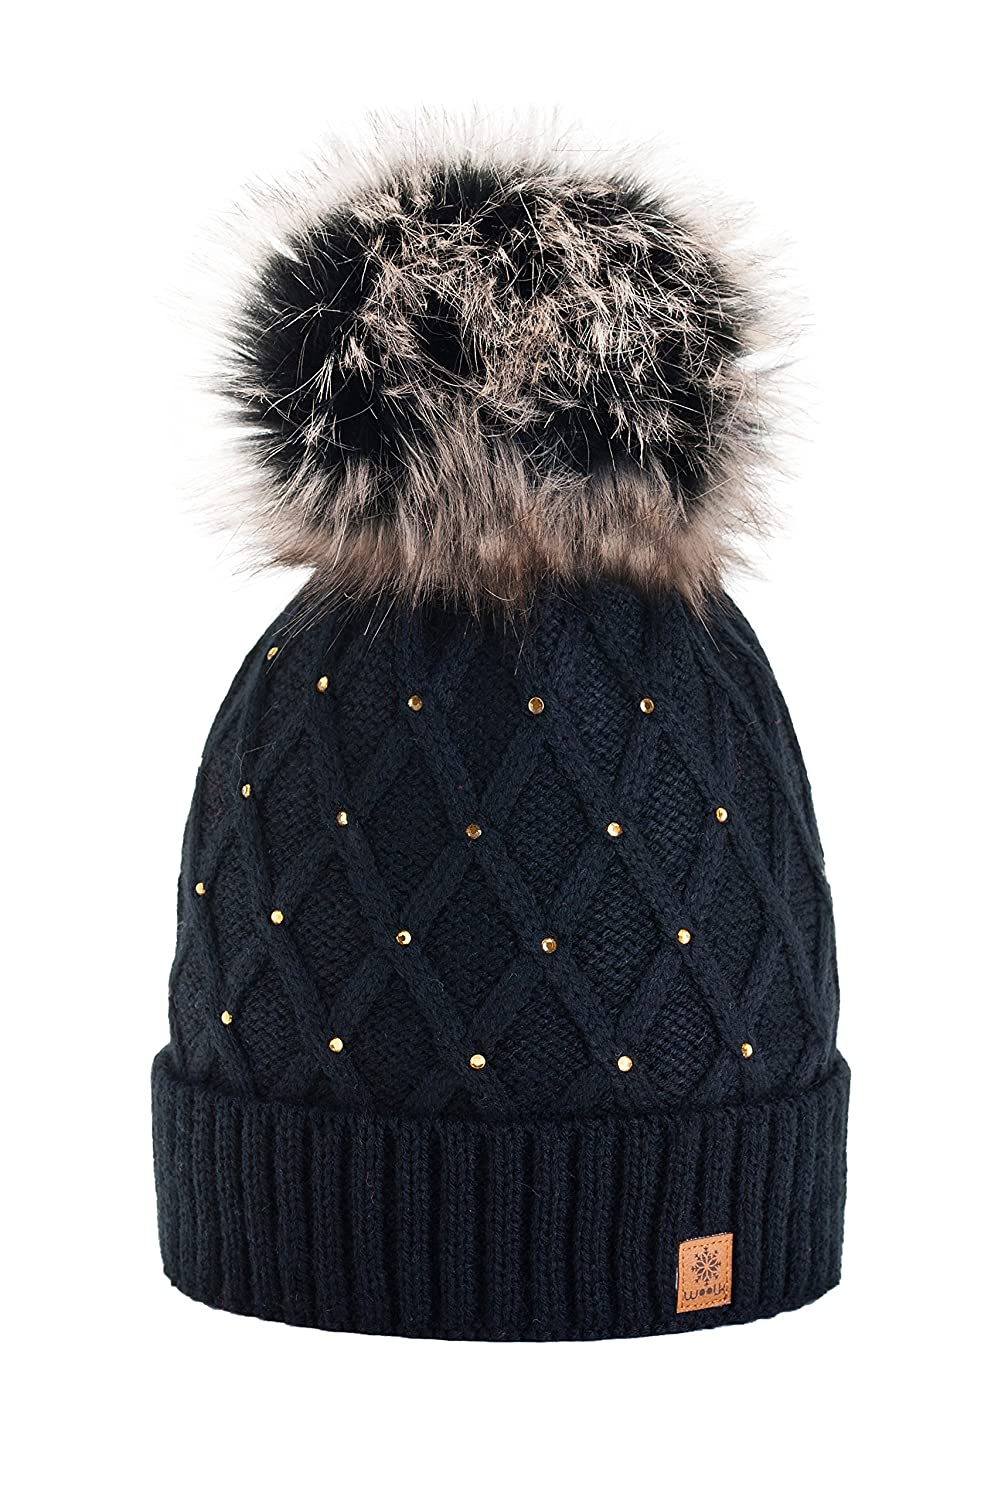 2d0d26545ea Women Girls Winter Beanie Hat Wool Knitted Crystal with Large Pom Pom Cap  Ski Snowboard Hats (Black) MFAZ Morefaz Ltd  Amazon.co.uk  Clothing